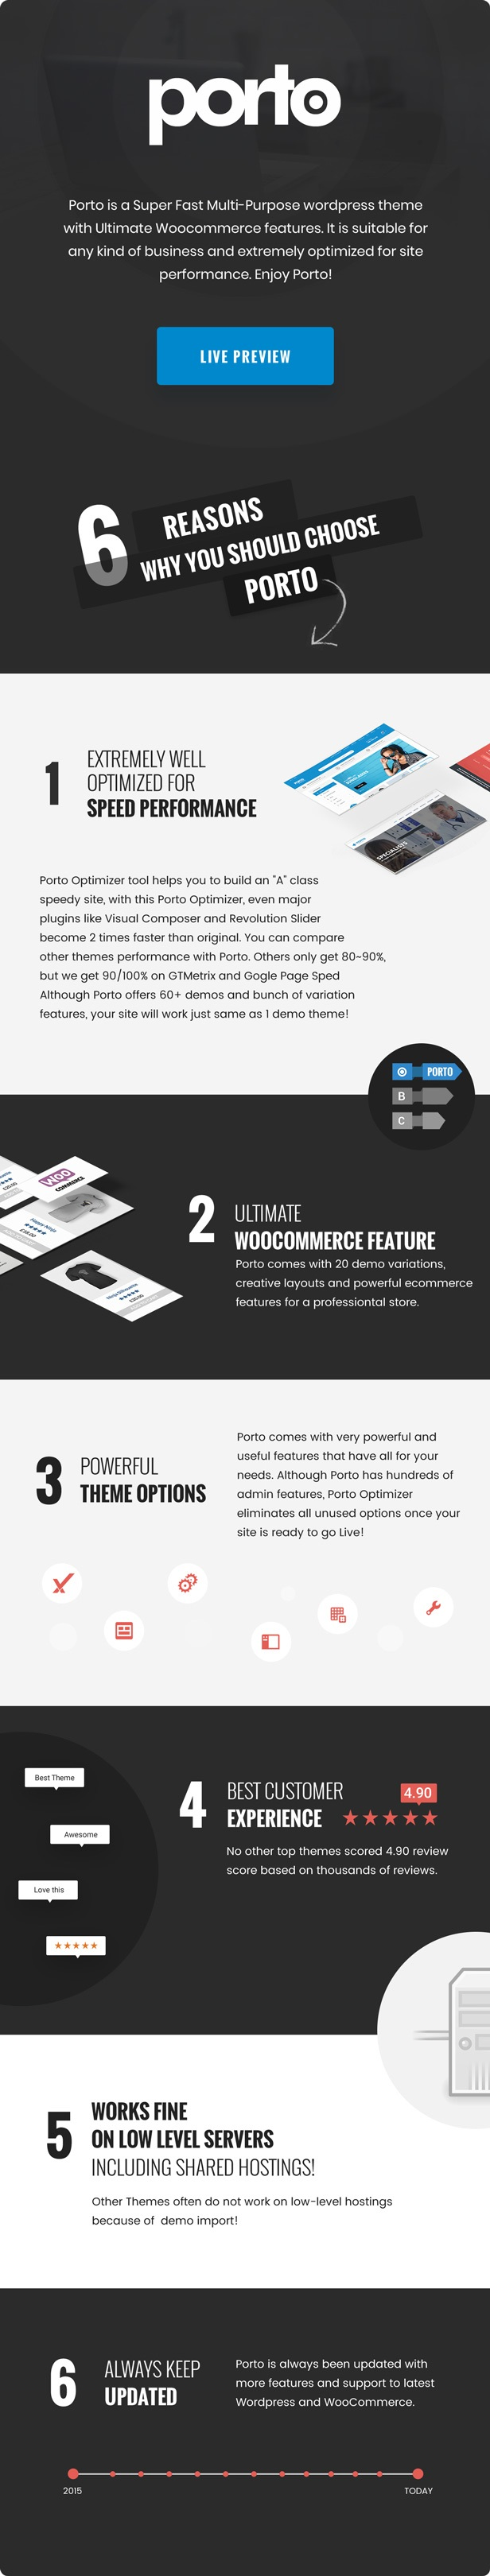 Porto | Responsive WordPress + eCommerce  - overview - Porto | Multi-Purpose Wordpress & Ultimate WooCommerce Theme